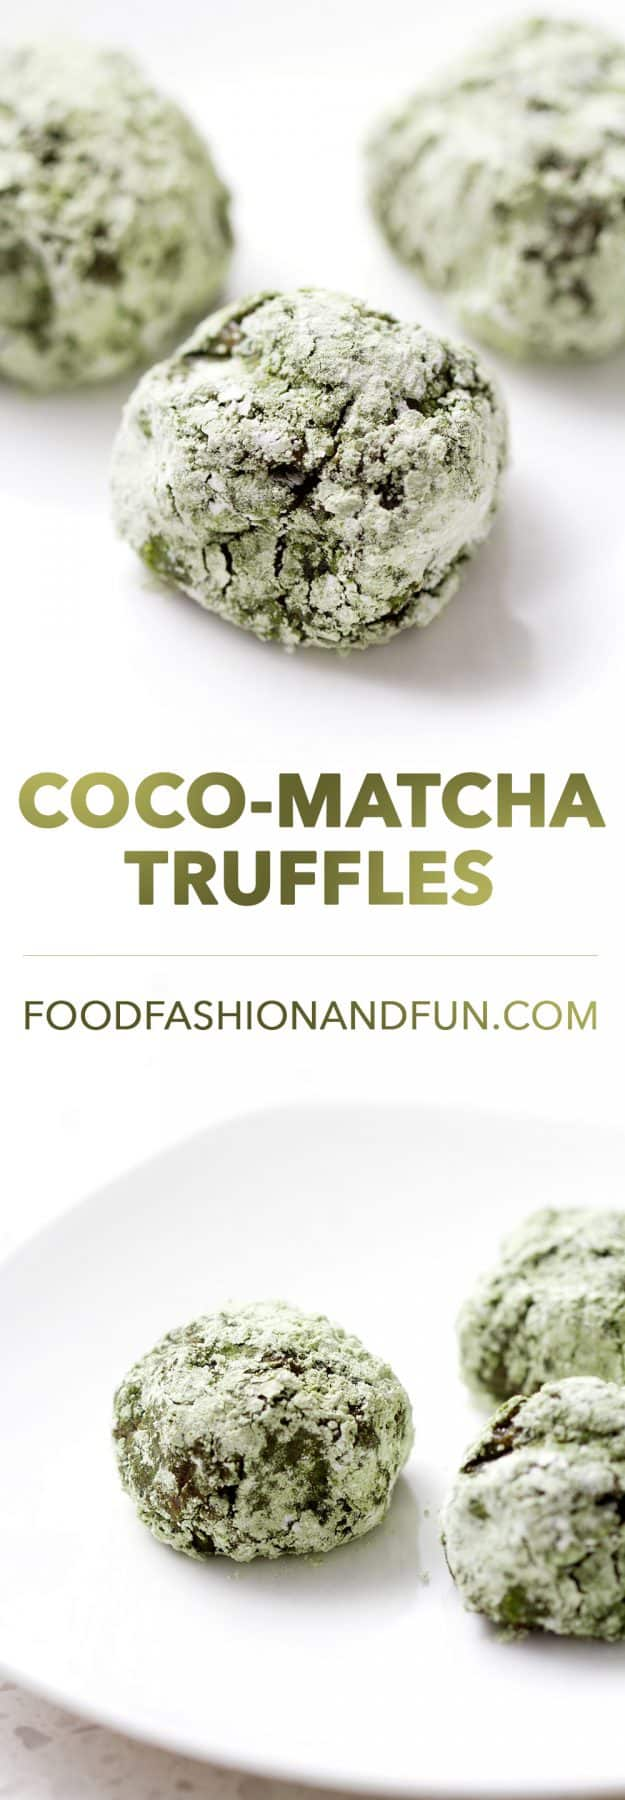 Gooey Coconut Matcha Truffles that melt in your mouth. They are the best combination of coconut, chocolate and matcha tea you'll ever eat. The recipe is also great for vegan and dairy free diets.